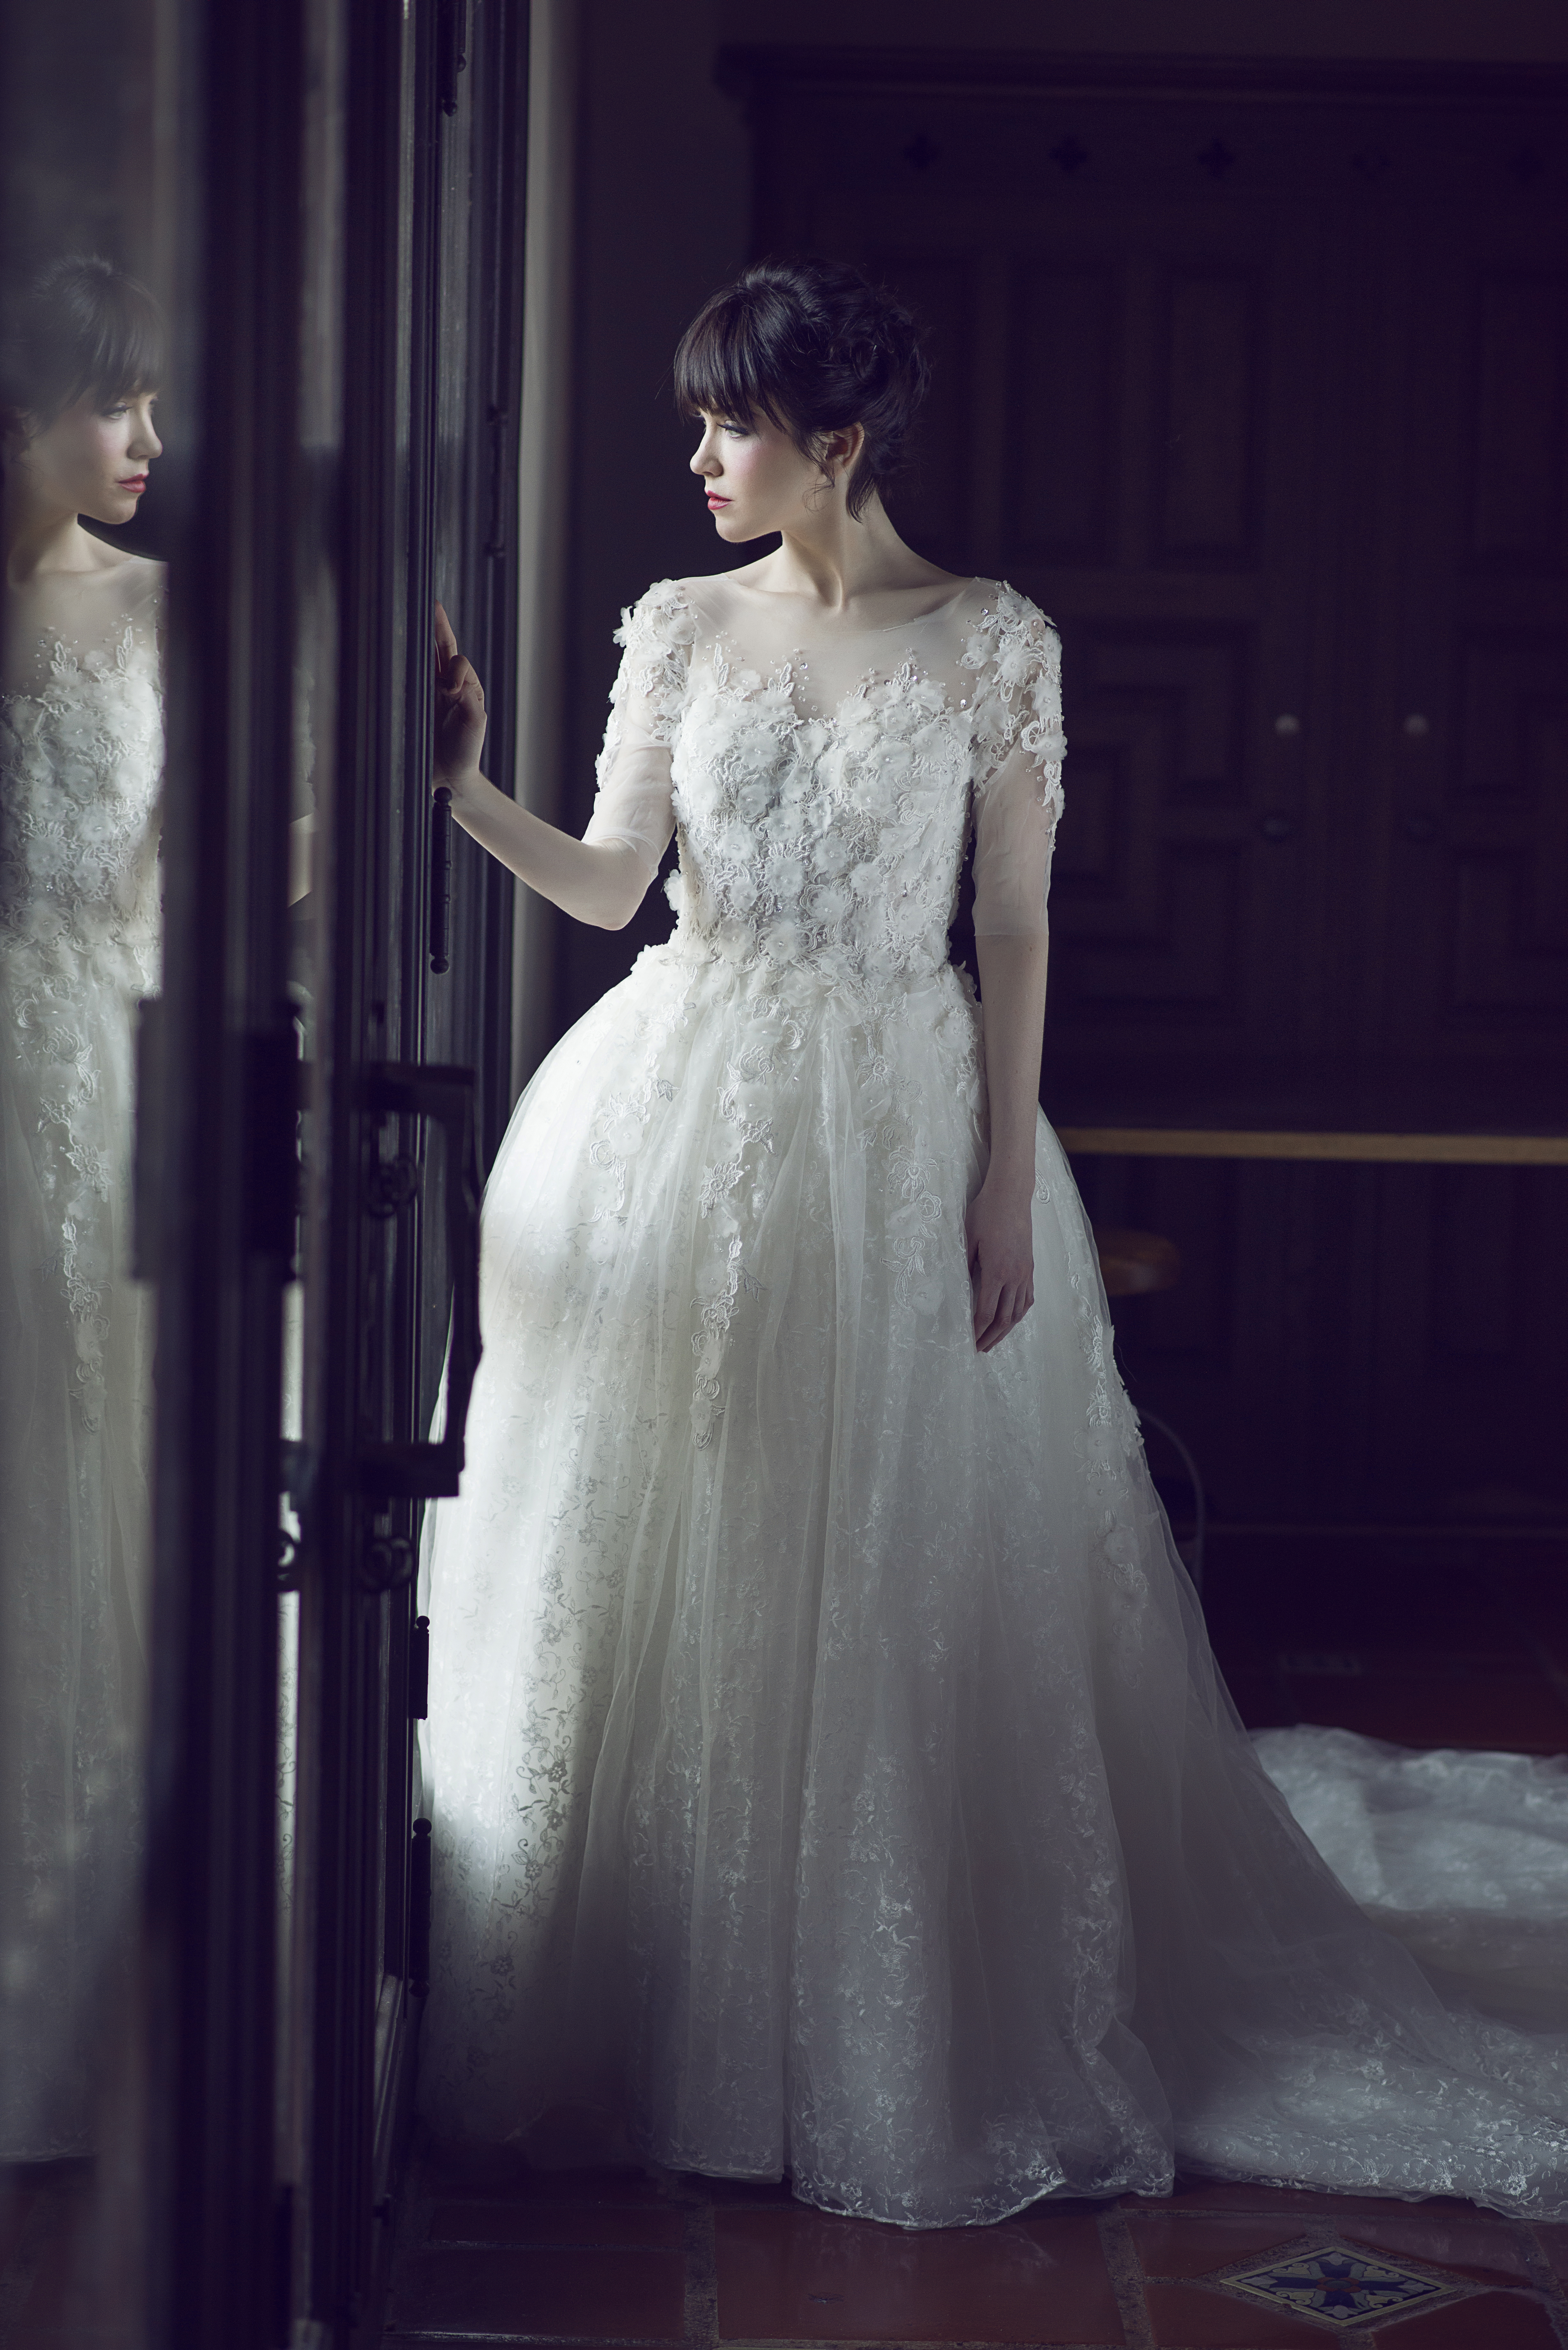 Designer Wedding Gowns For Rent - Ocodea.com